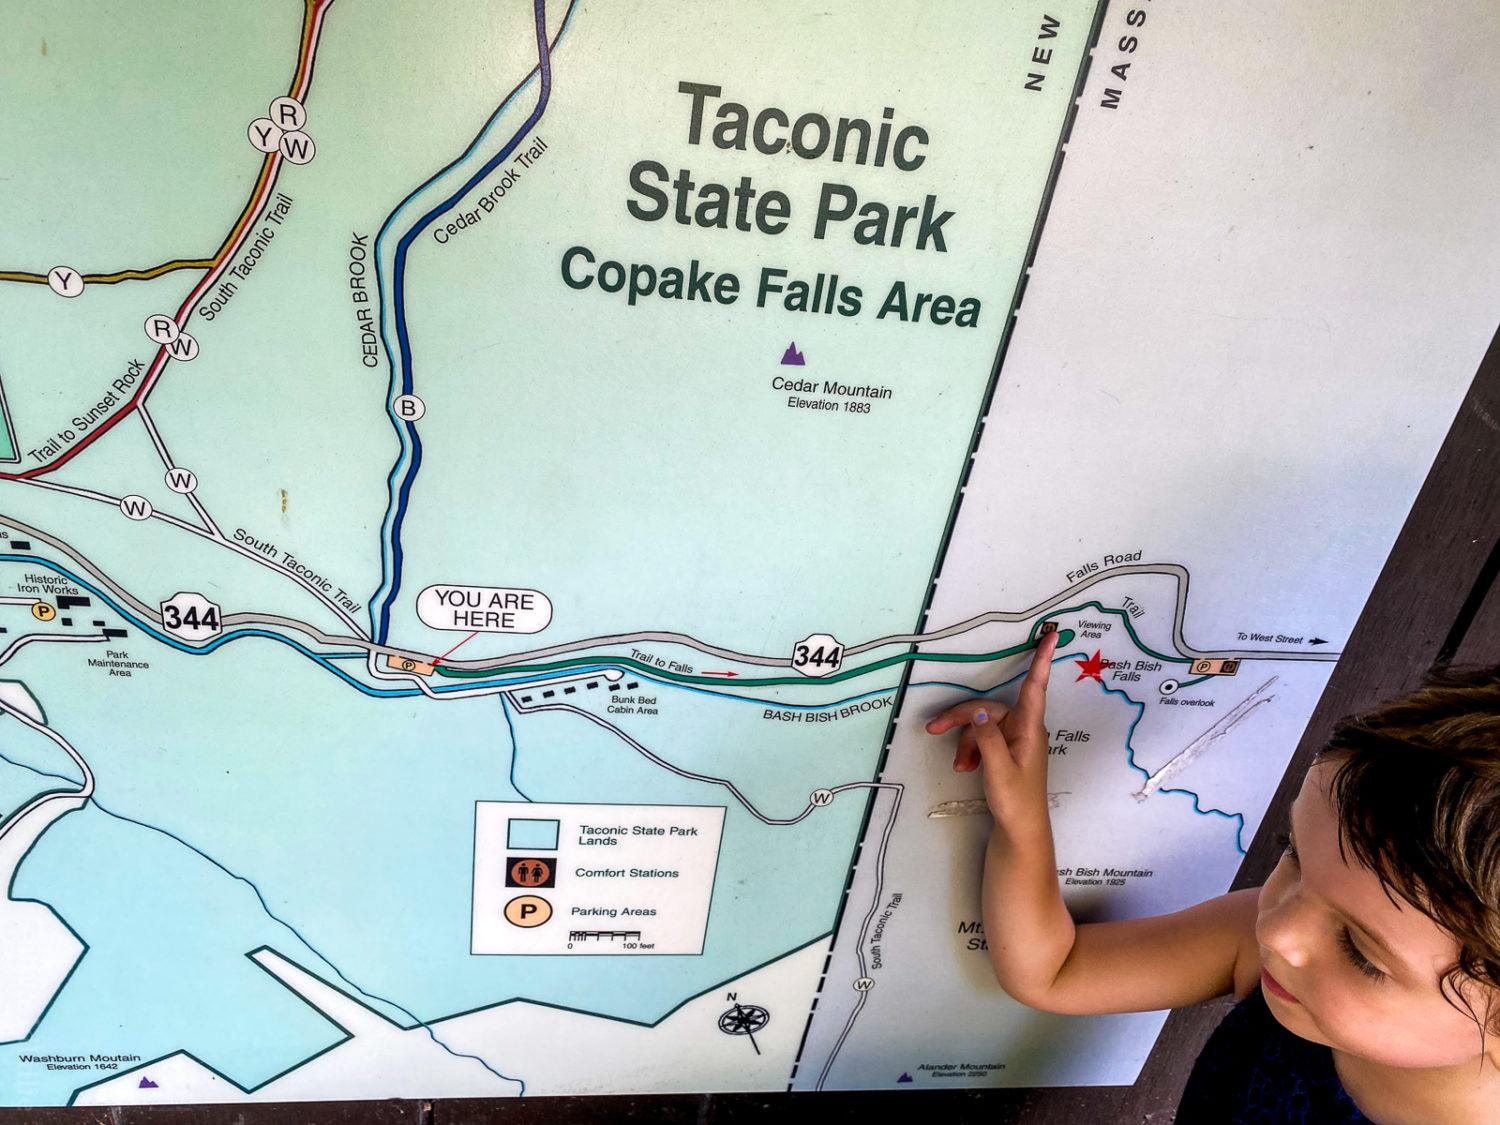 Map of Taconic State Park